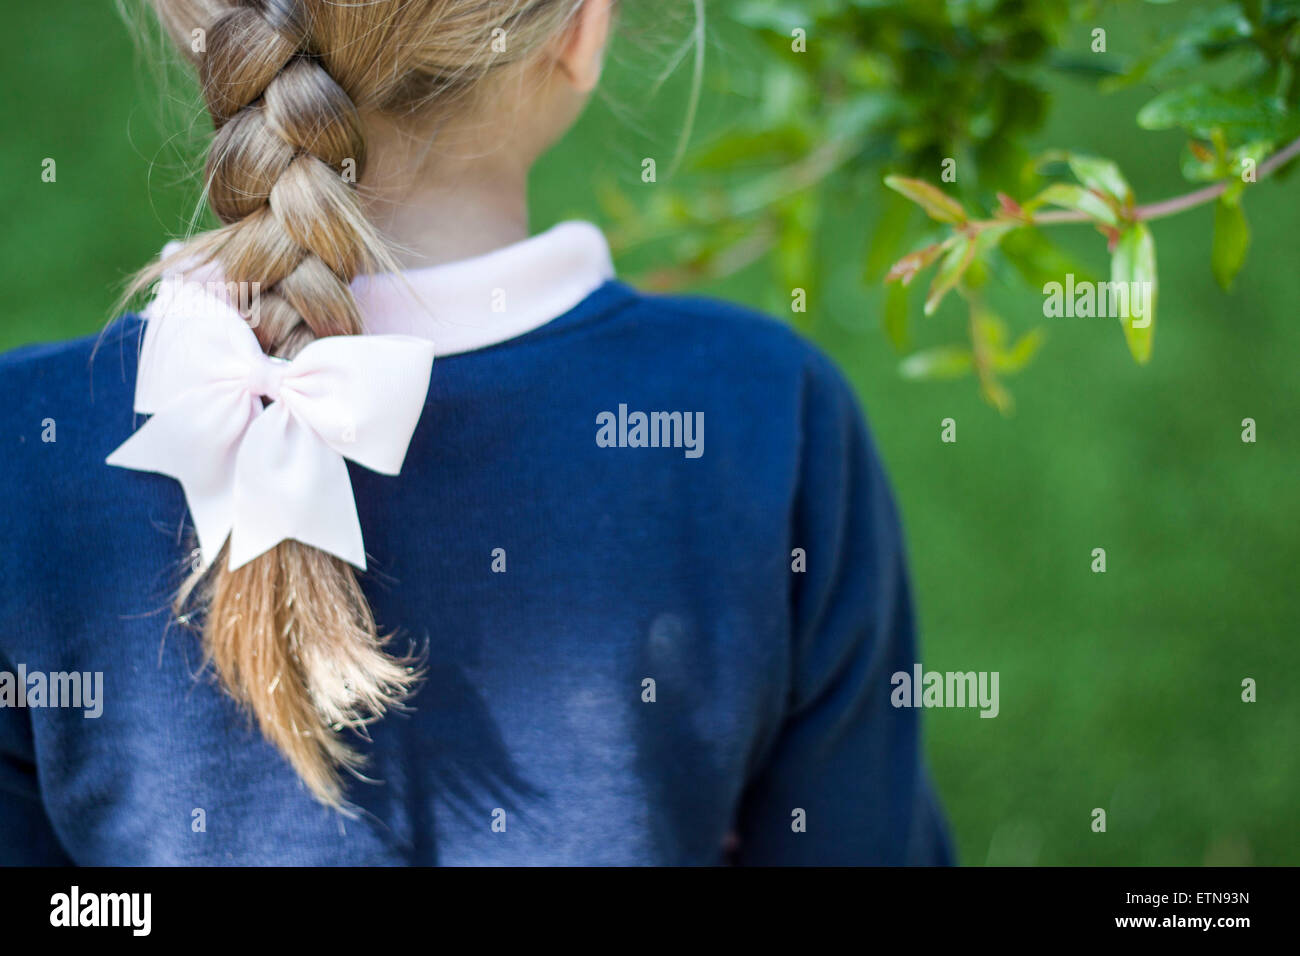 Rear view of a girl with a braid - Stock Image